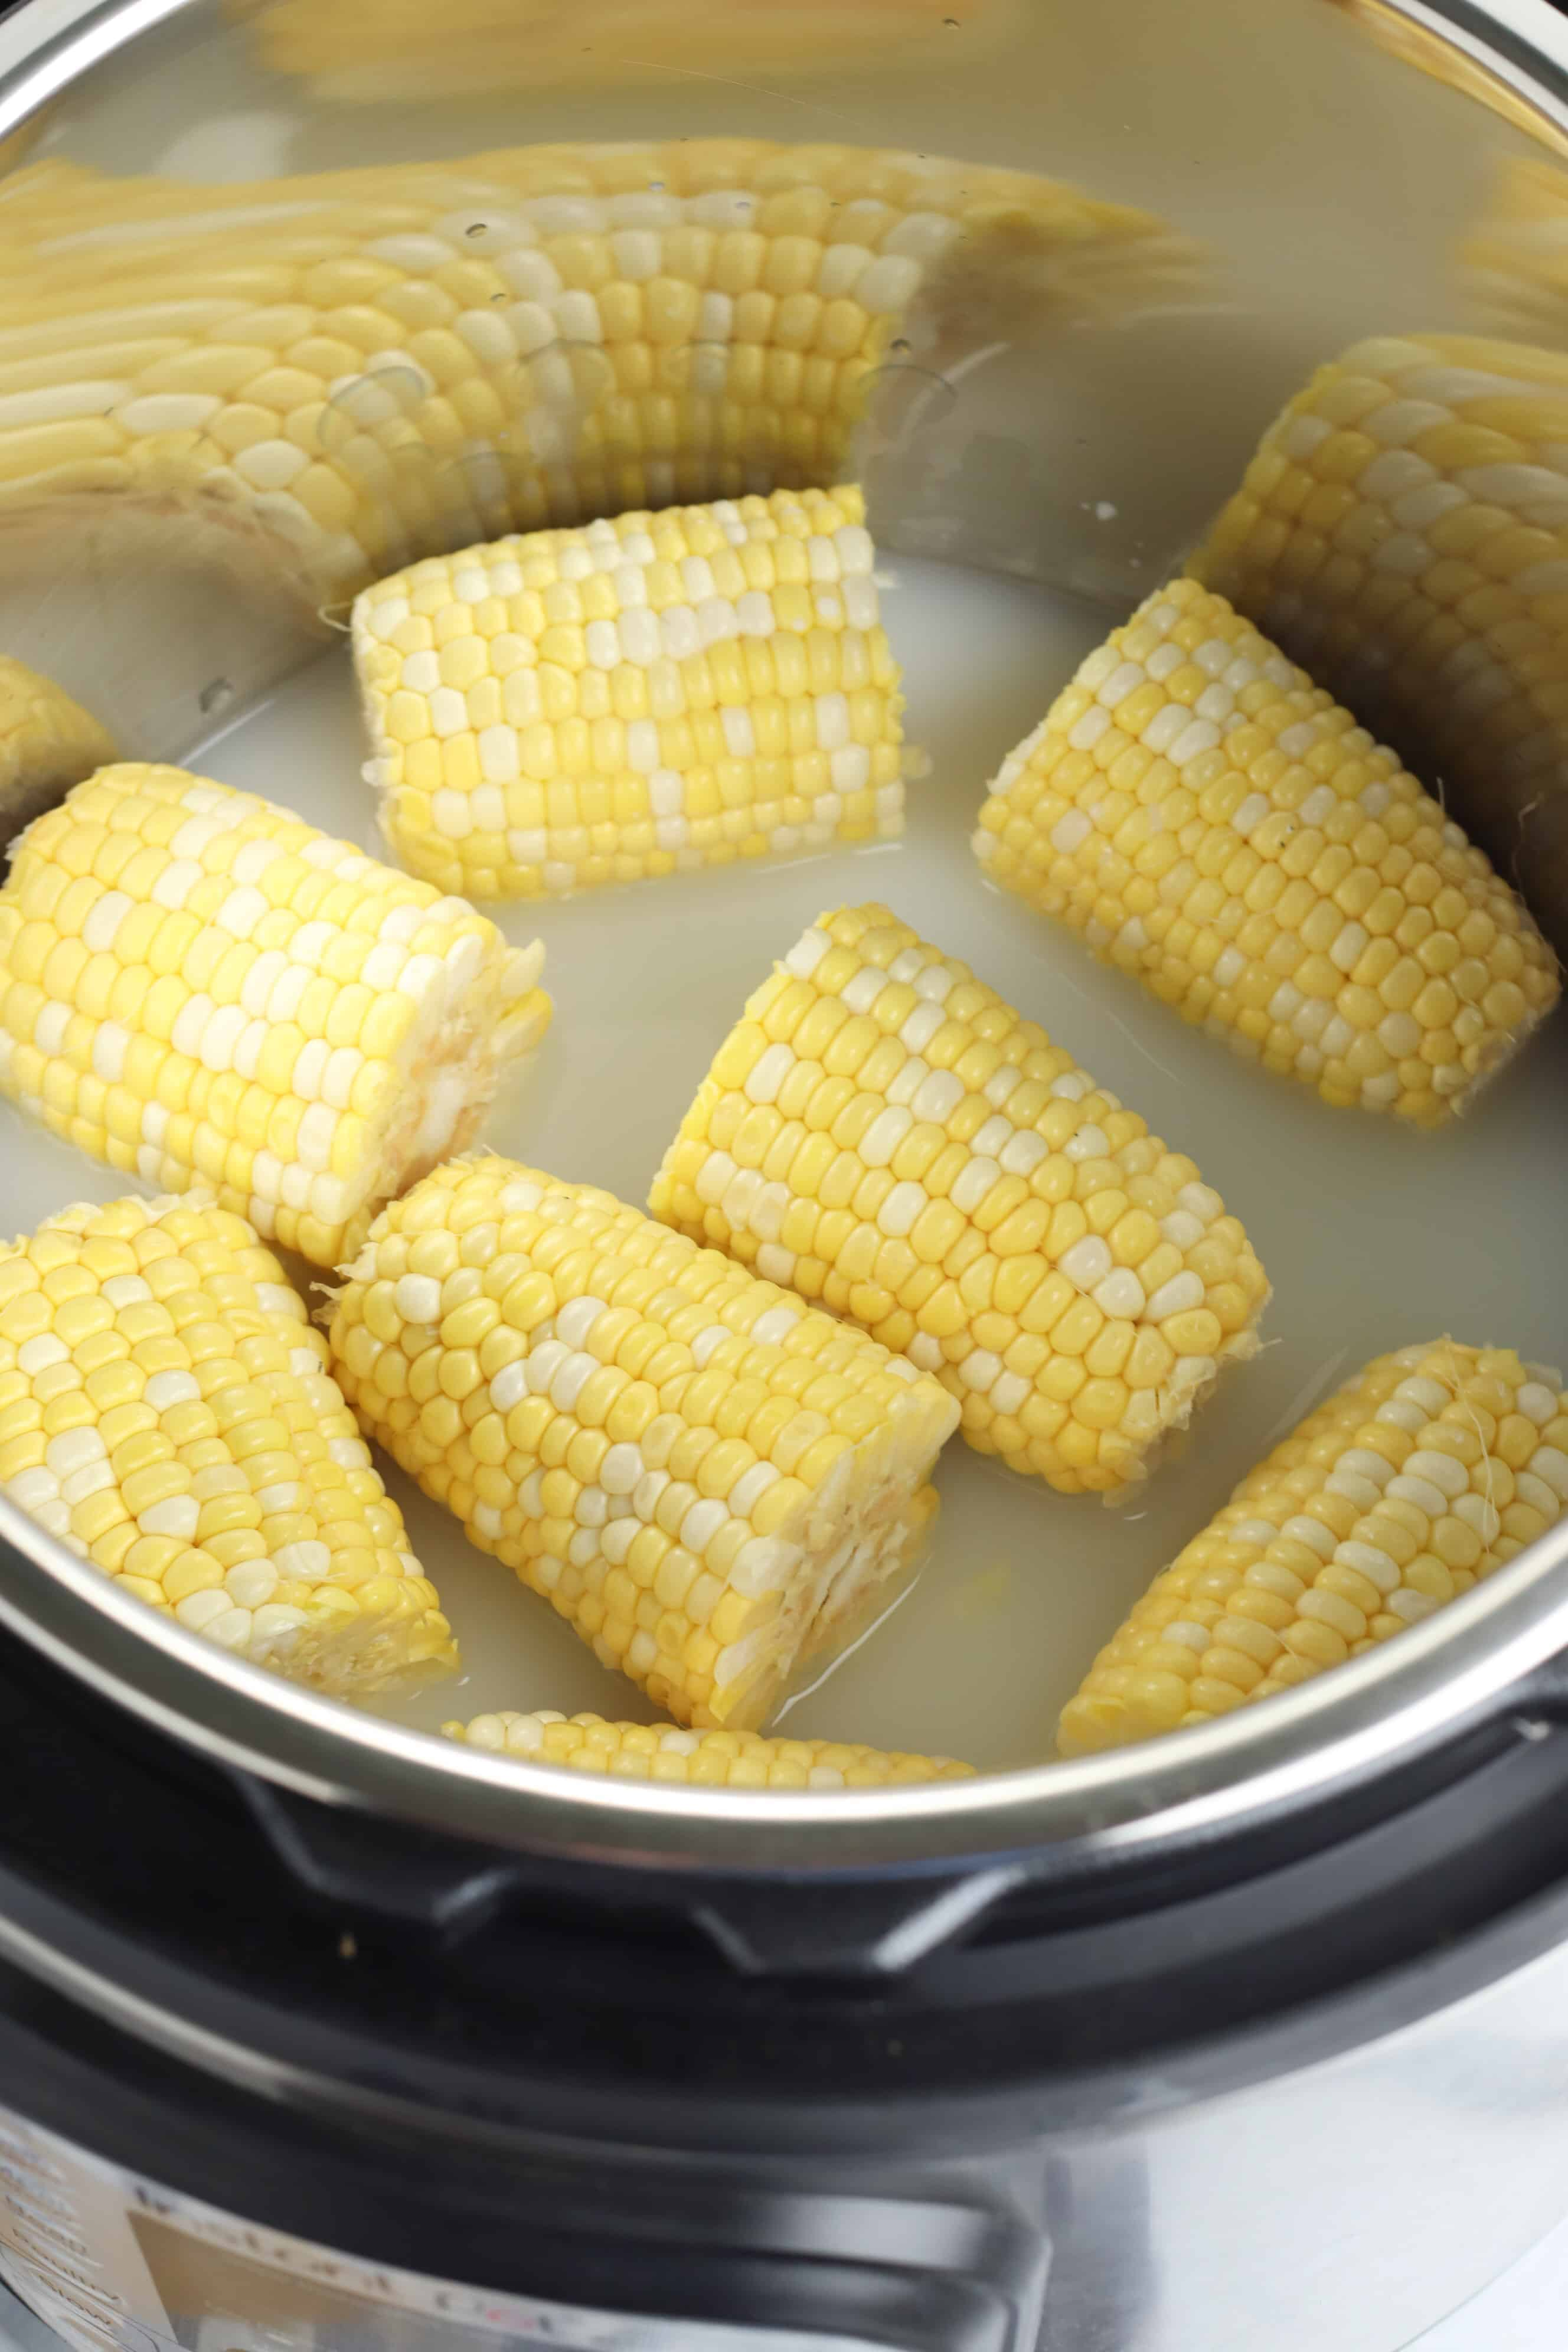 corn and water in an instant pot